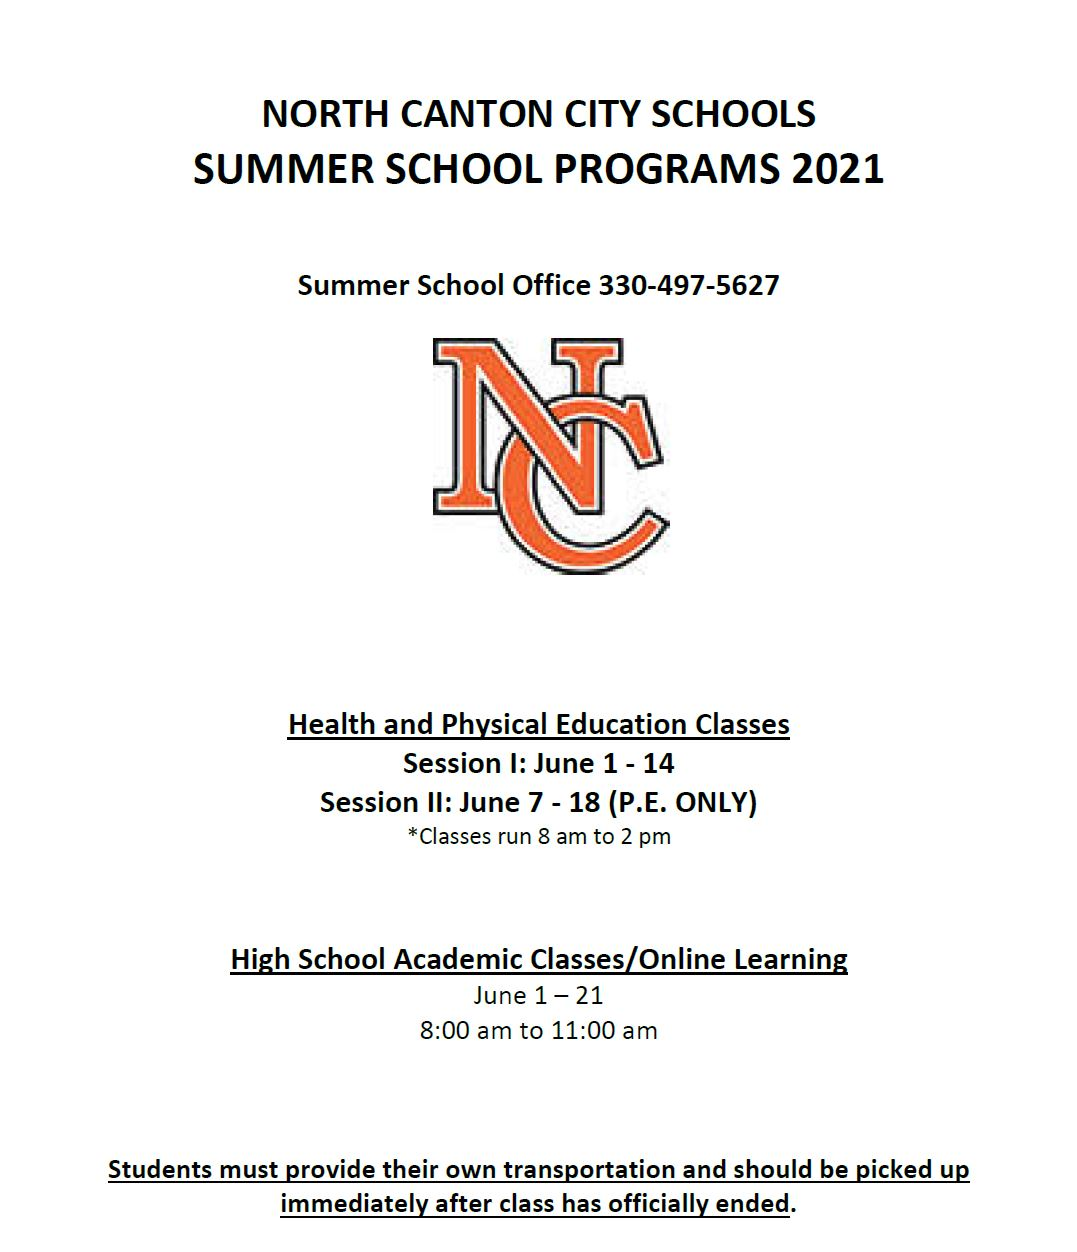 Cover page of Summer School brochure